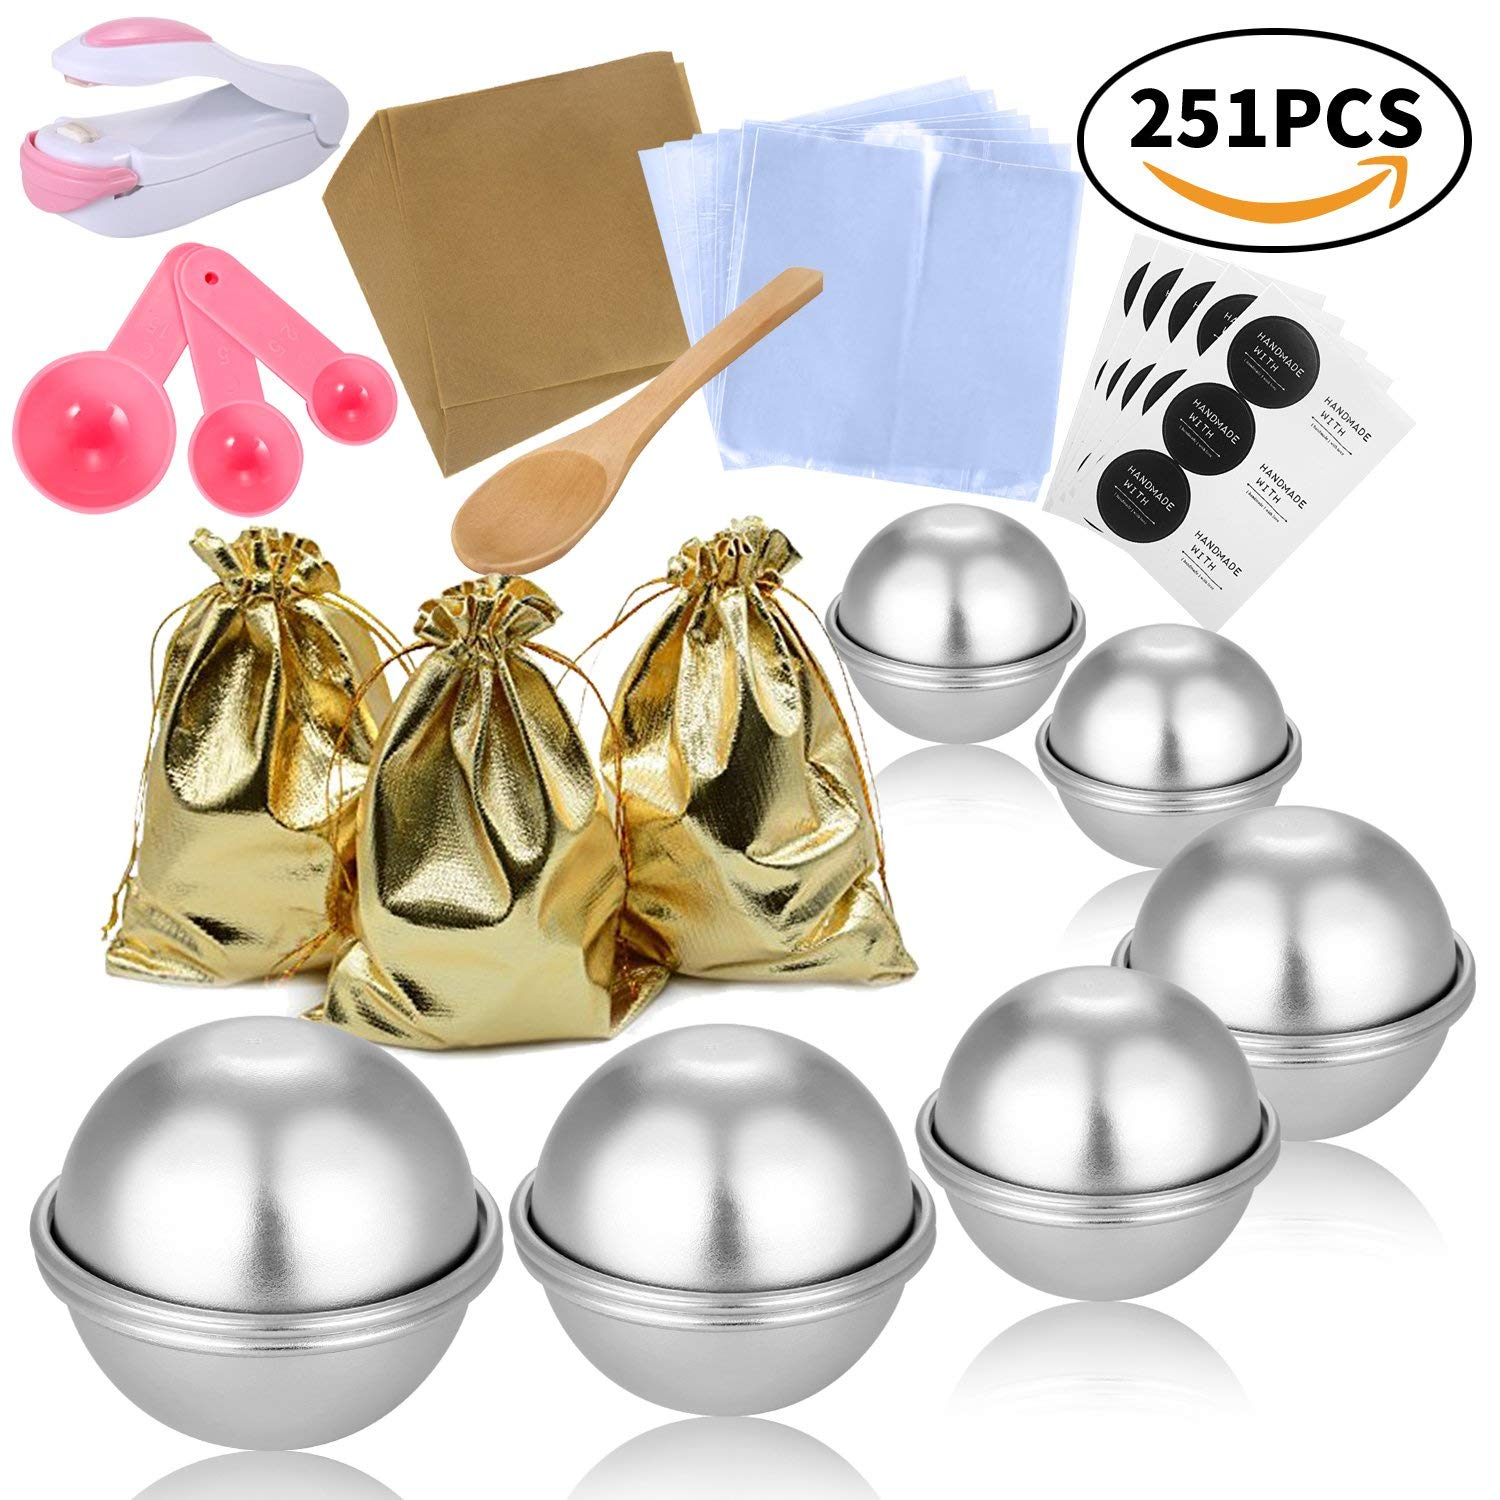 BEAVO 251 Pcs DIY Metal Bath Bomb Mold Set , Most Complete Set: 4 Size 12 Pcs Bath Bomb Molds, Wrapping papers, Shrink Wrap Bags, Gift Bags, Spoons and Mini Sealer - for Bath Bomb Making and Crafts